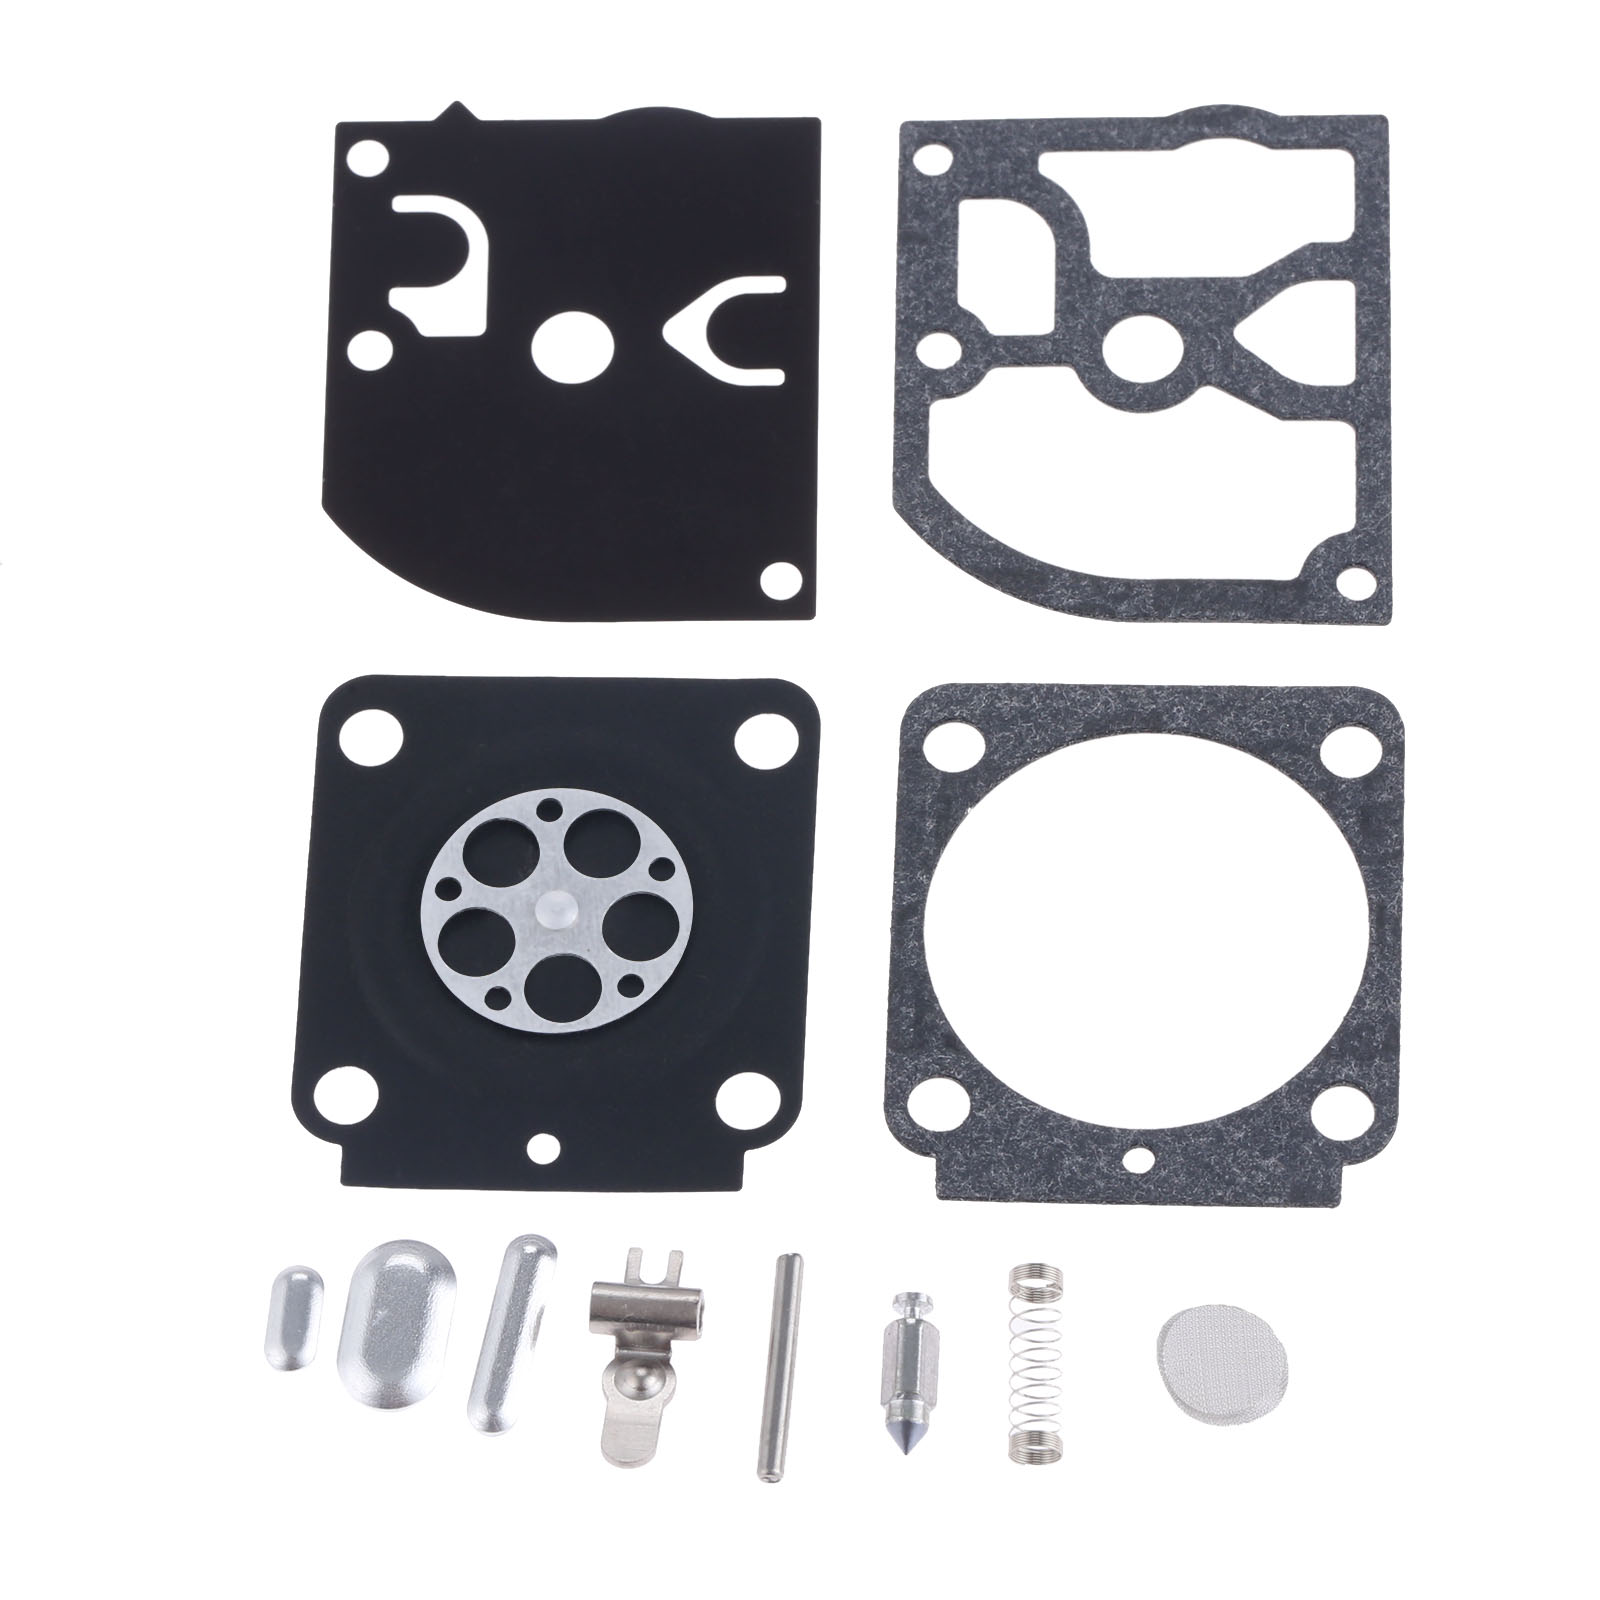 DRELD RB-106 Carburetor Carb Repair Rebuid Gasket Kit For Stihl FS38 HS45 FS55 ZAMA C1Q Carburetor RB-106 CARB Garden Tool Parts